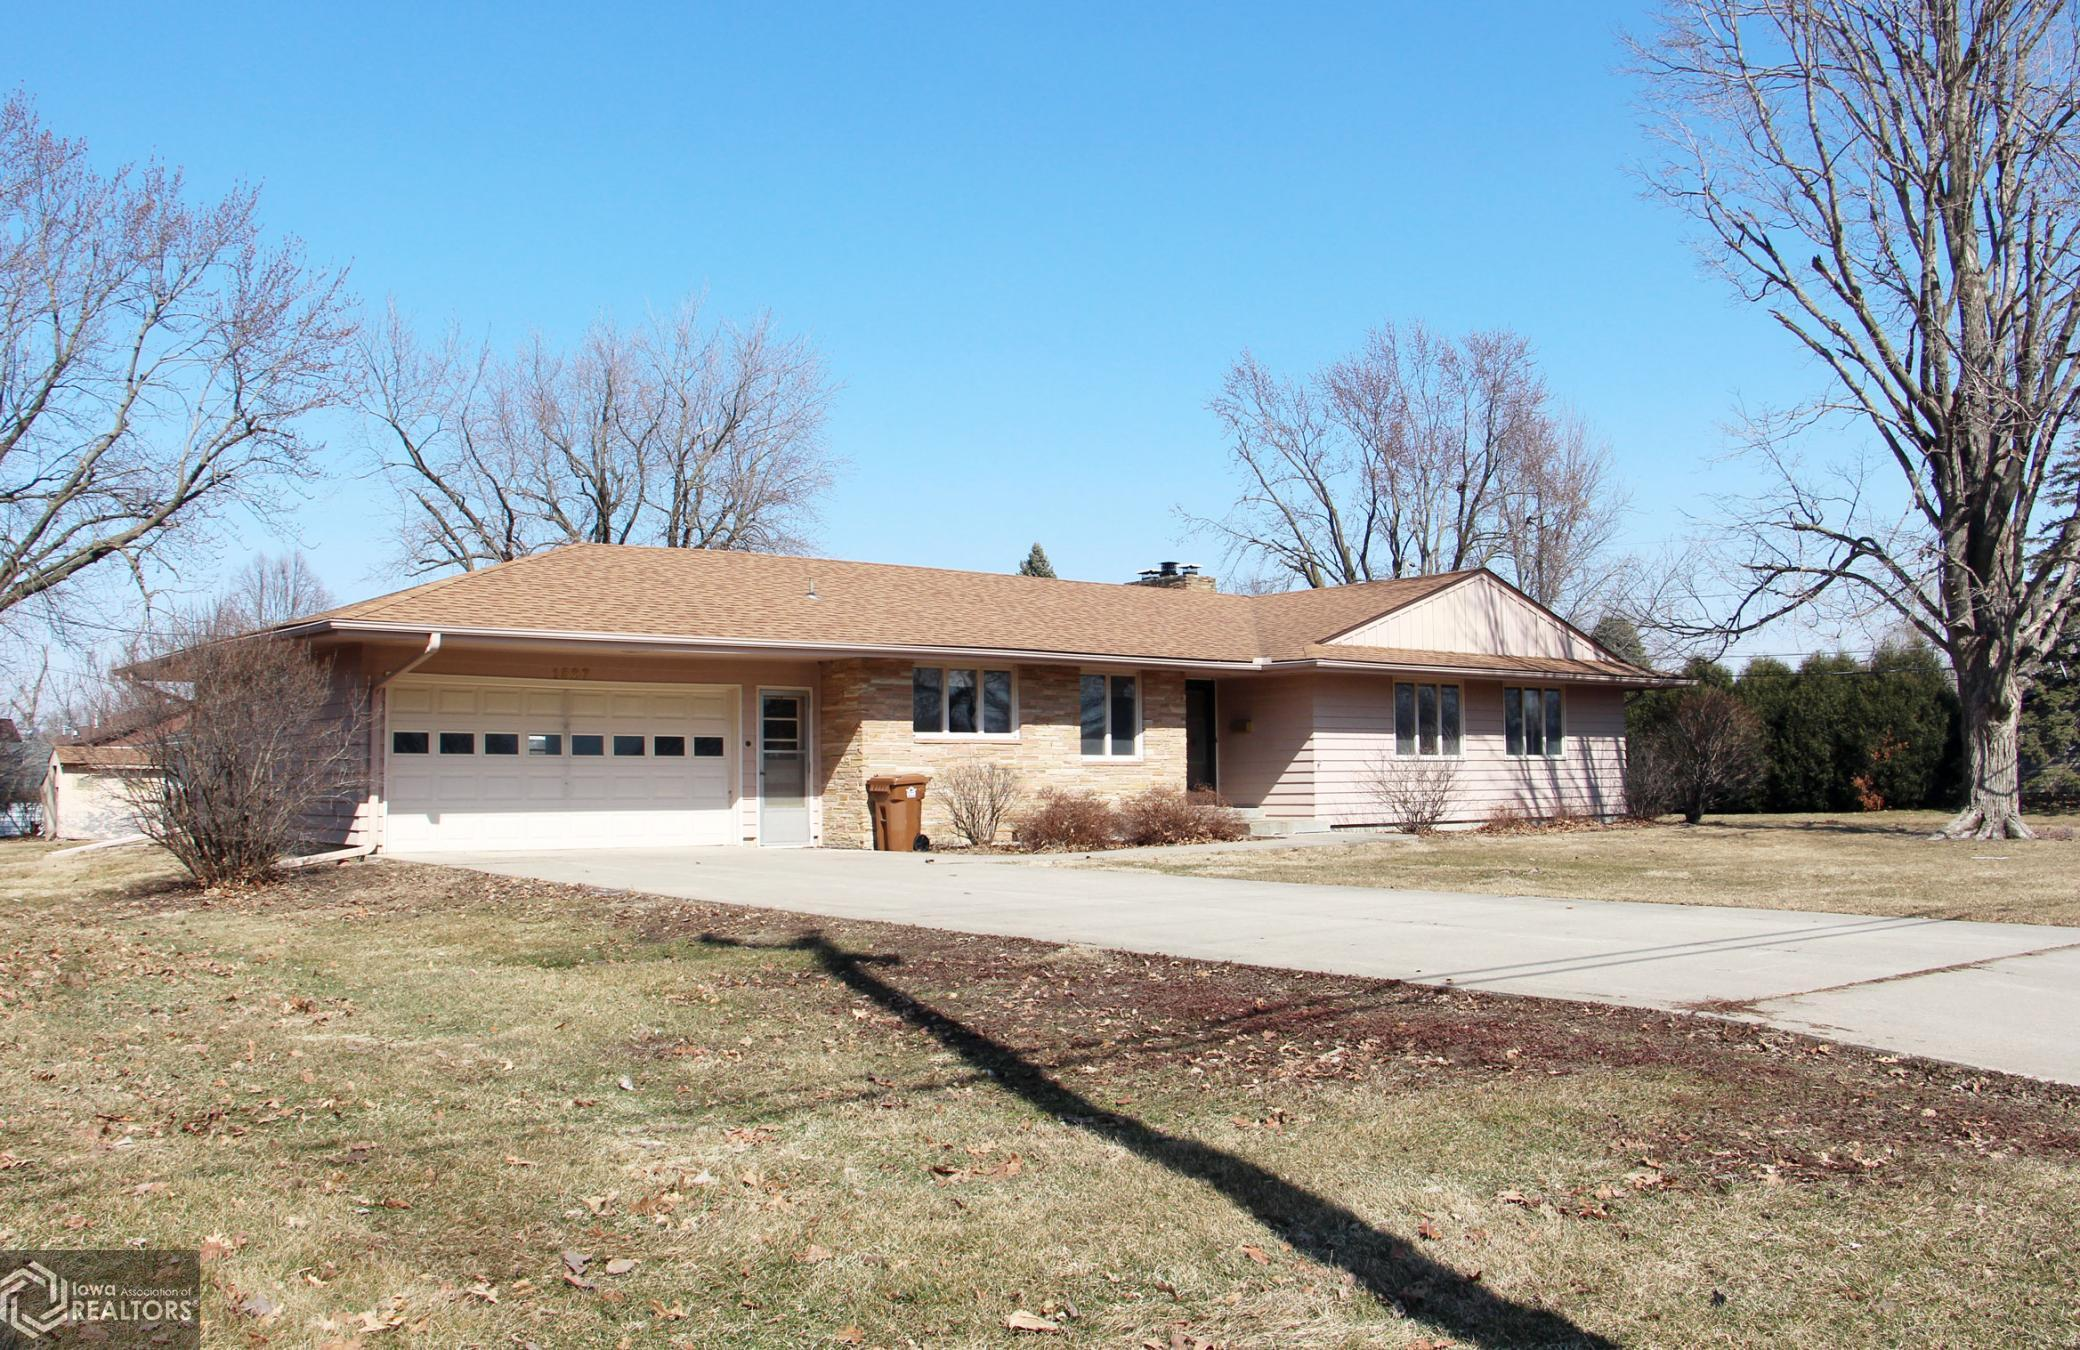 1527 10th, Grinnell, Iowa 50112-1215, 3 Bedrooms Bedrooms, ,1 BathroomBathrooms,Single Family,For Sale,10th,5723536